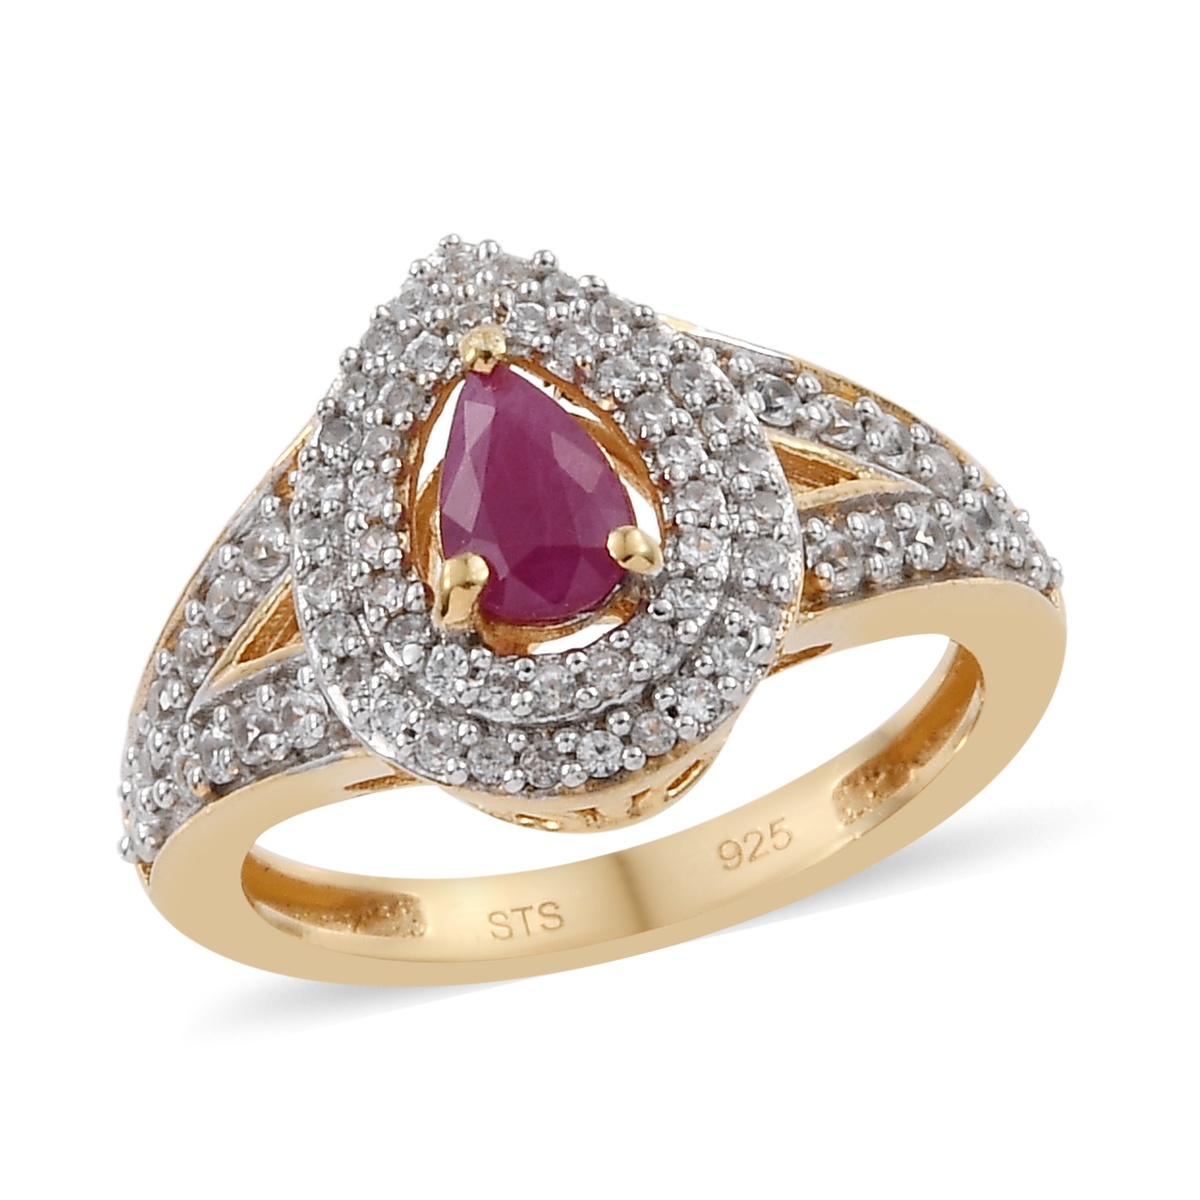 Burmese Ruby, Zircon Ring in Vermeil YG Over Sterling Silver (Size 7.0) 1.09 ctw